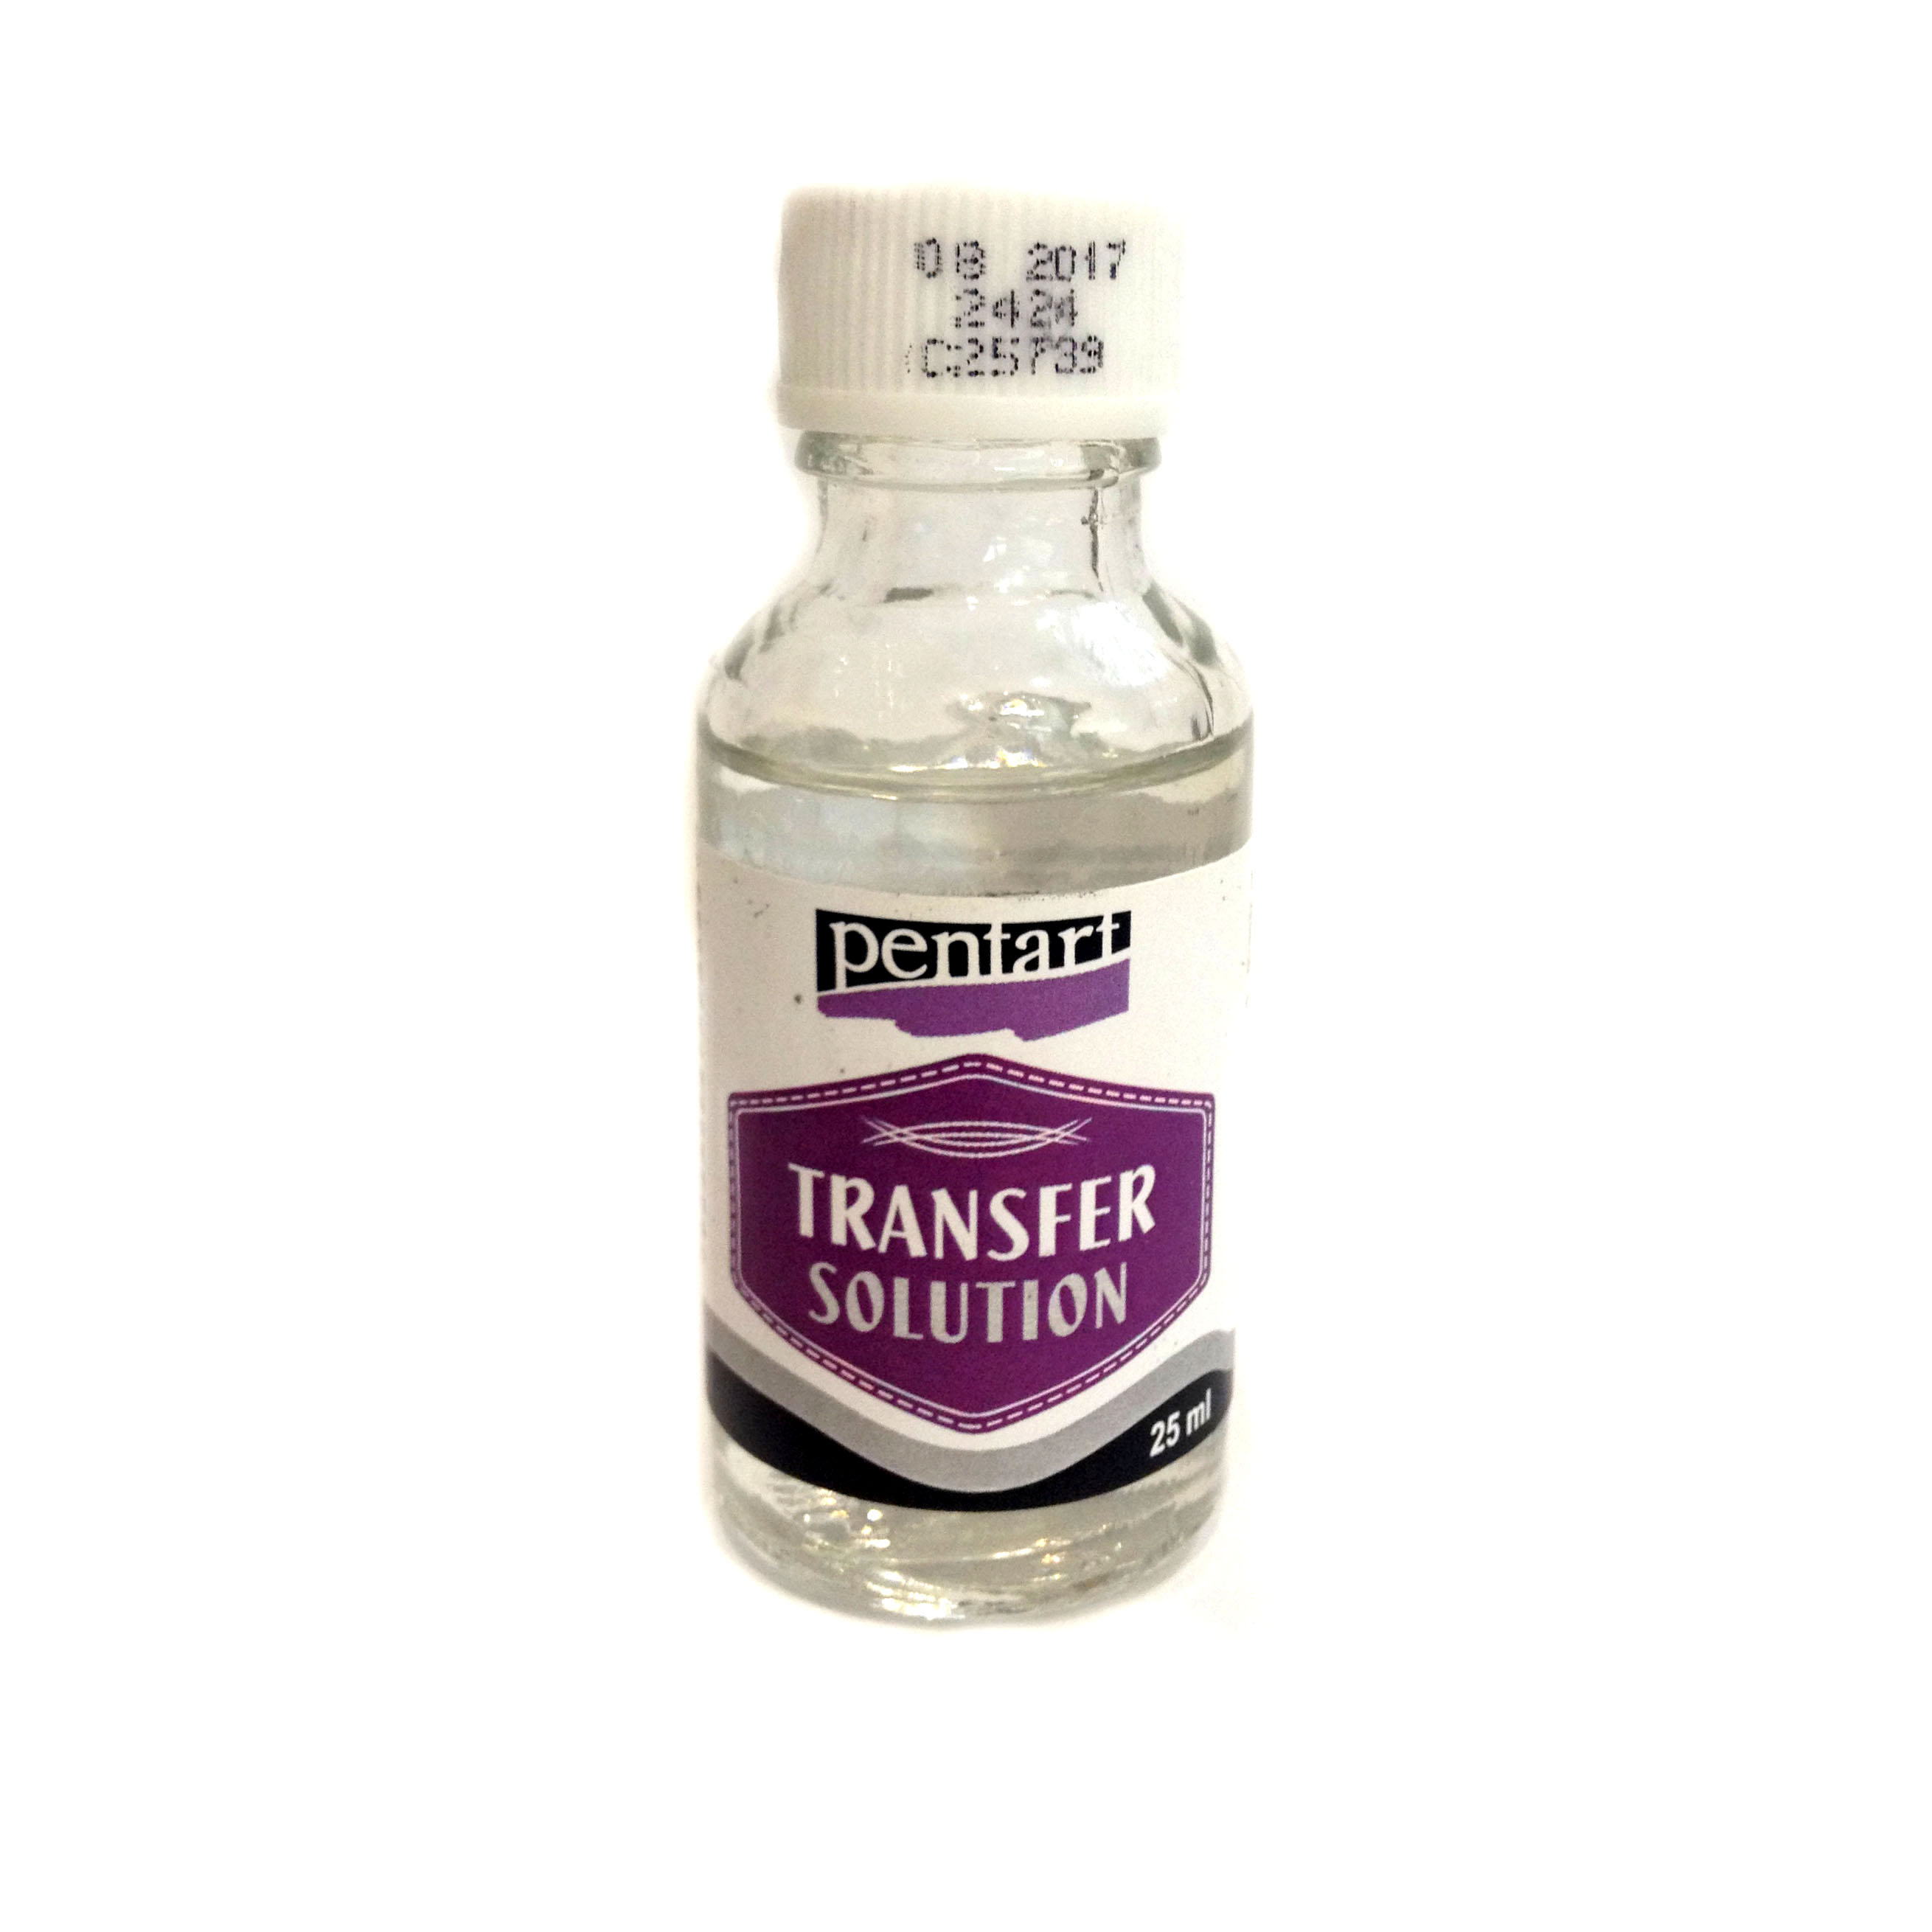 Ekspres transfer PENTART - 25 ml